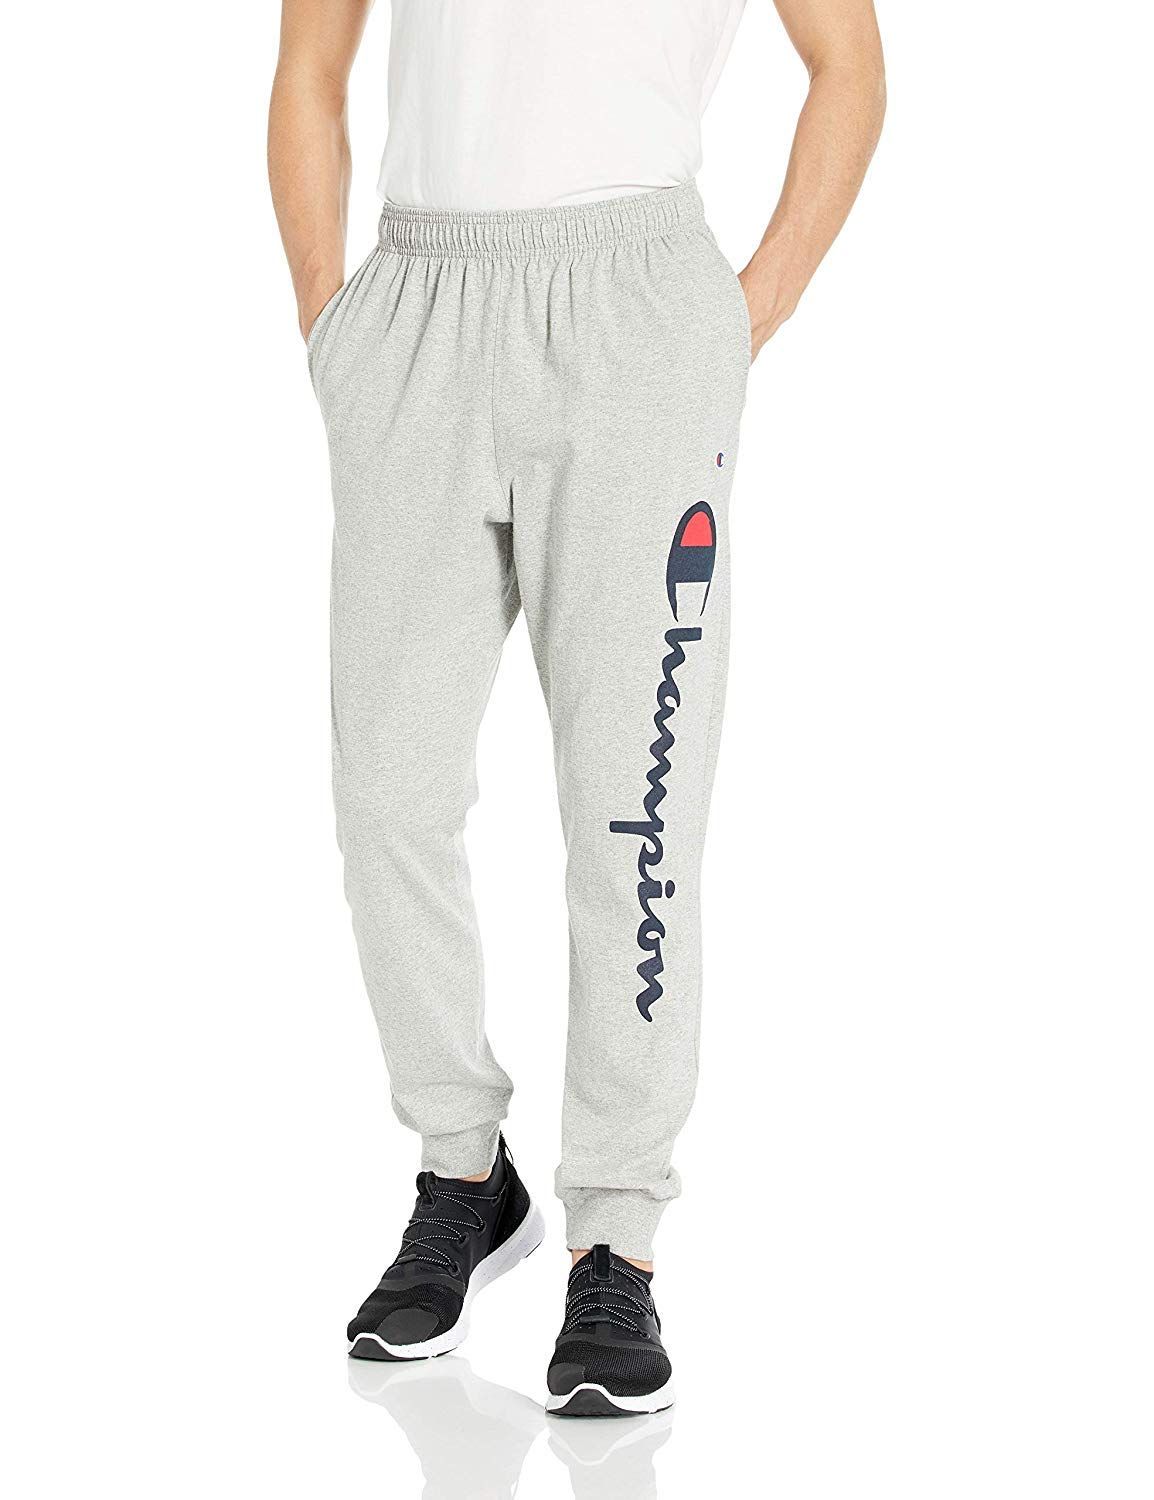 Champion Men's Classic Jersey Graphic Jogger - Y07234 Oxford Grey Large 31